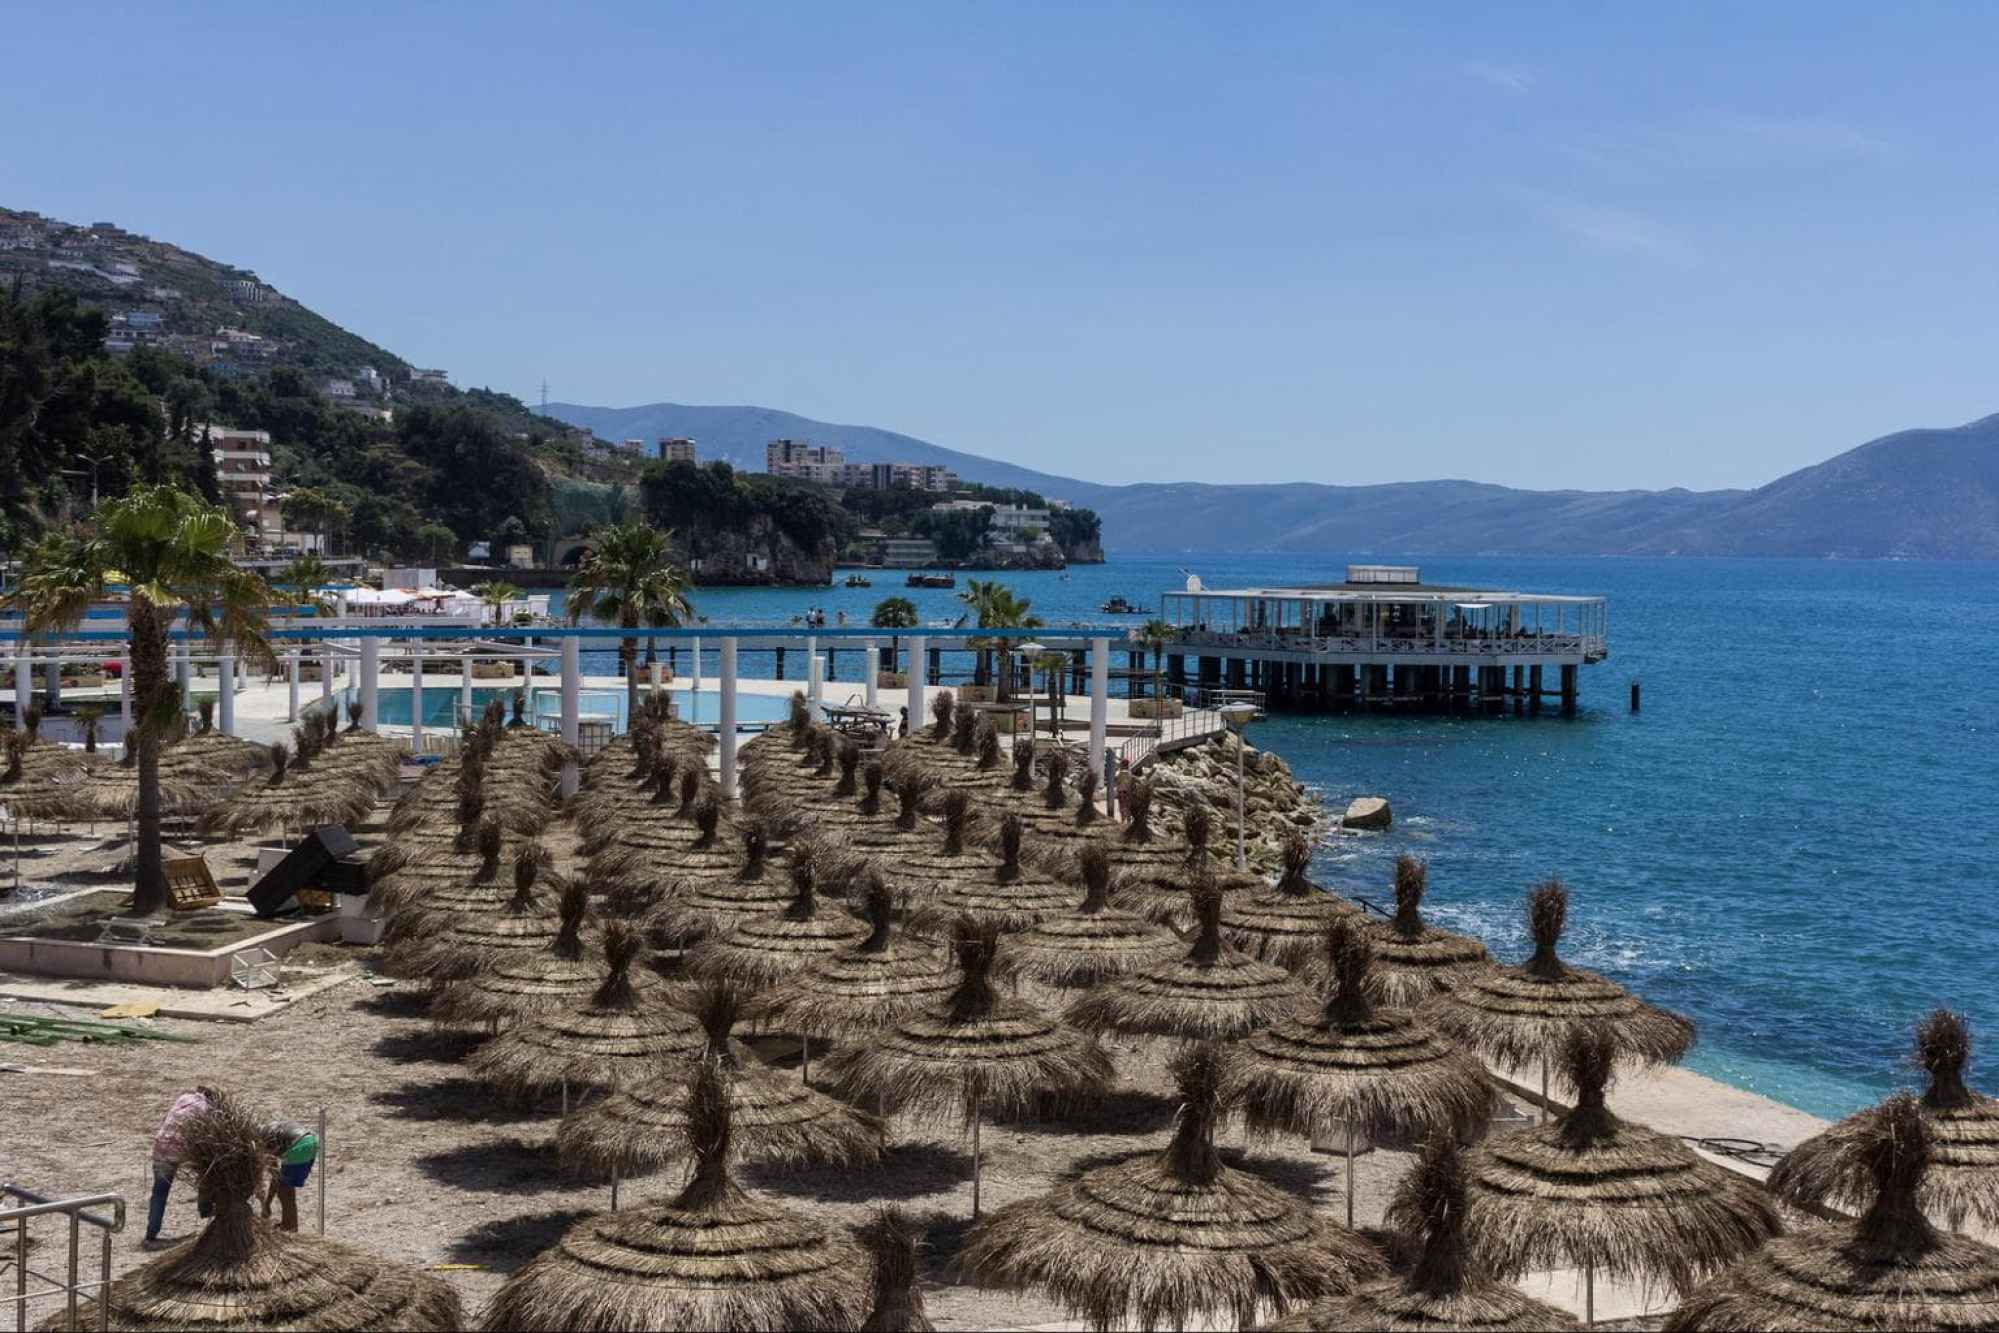 Vlore Beach - Photo by Leif Hinrichsen on Flickr BY CC-NC 2.0